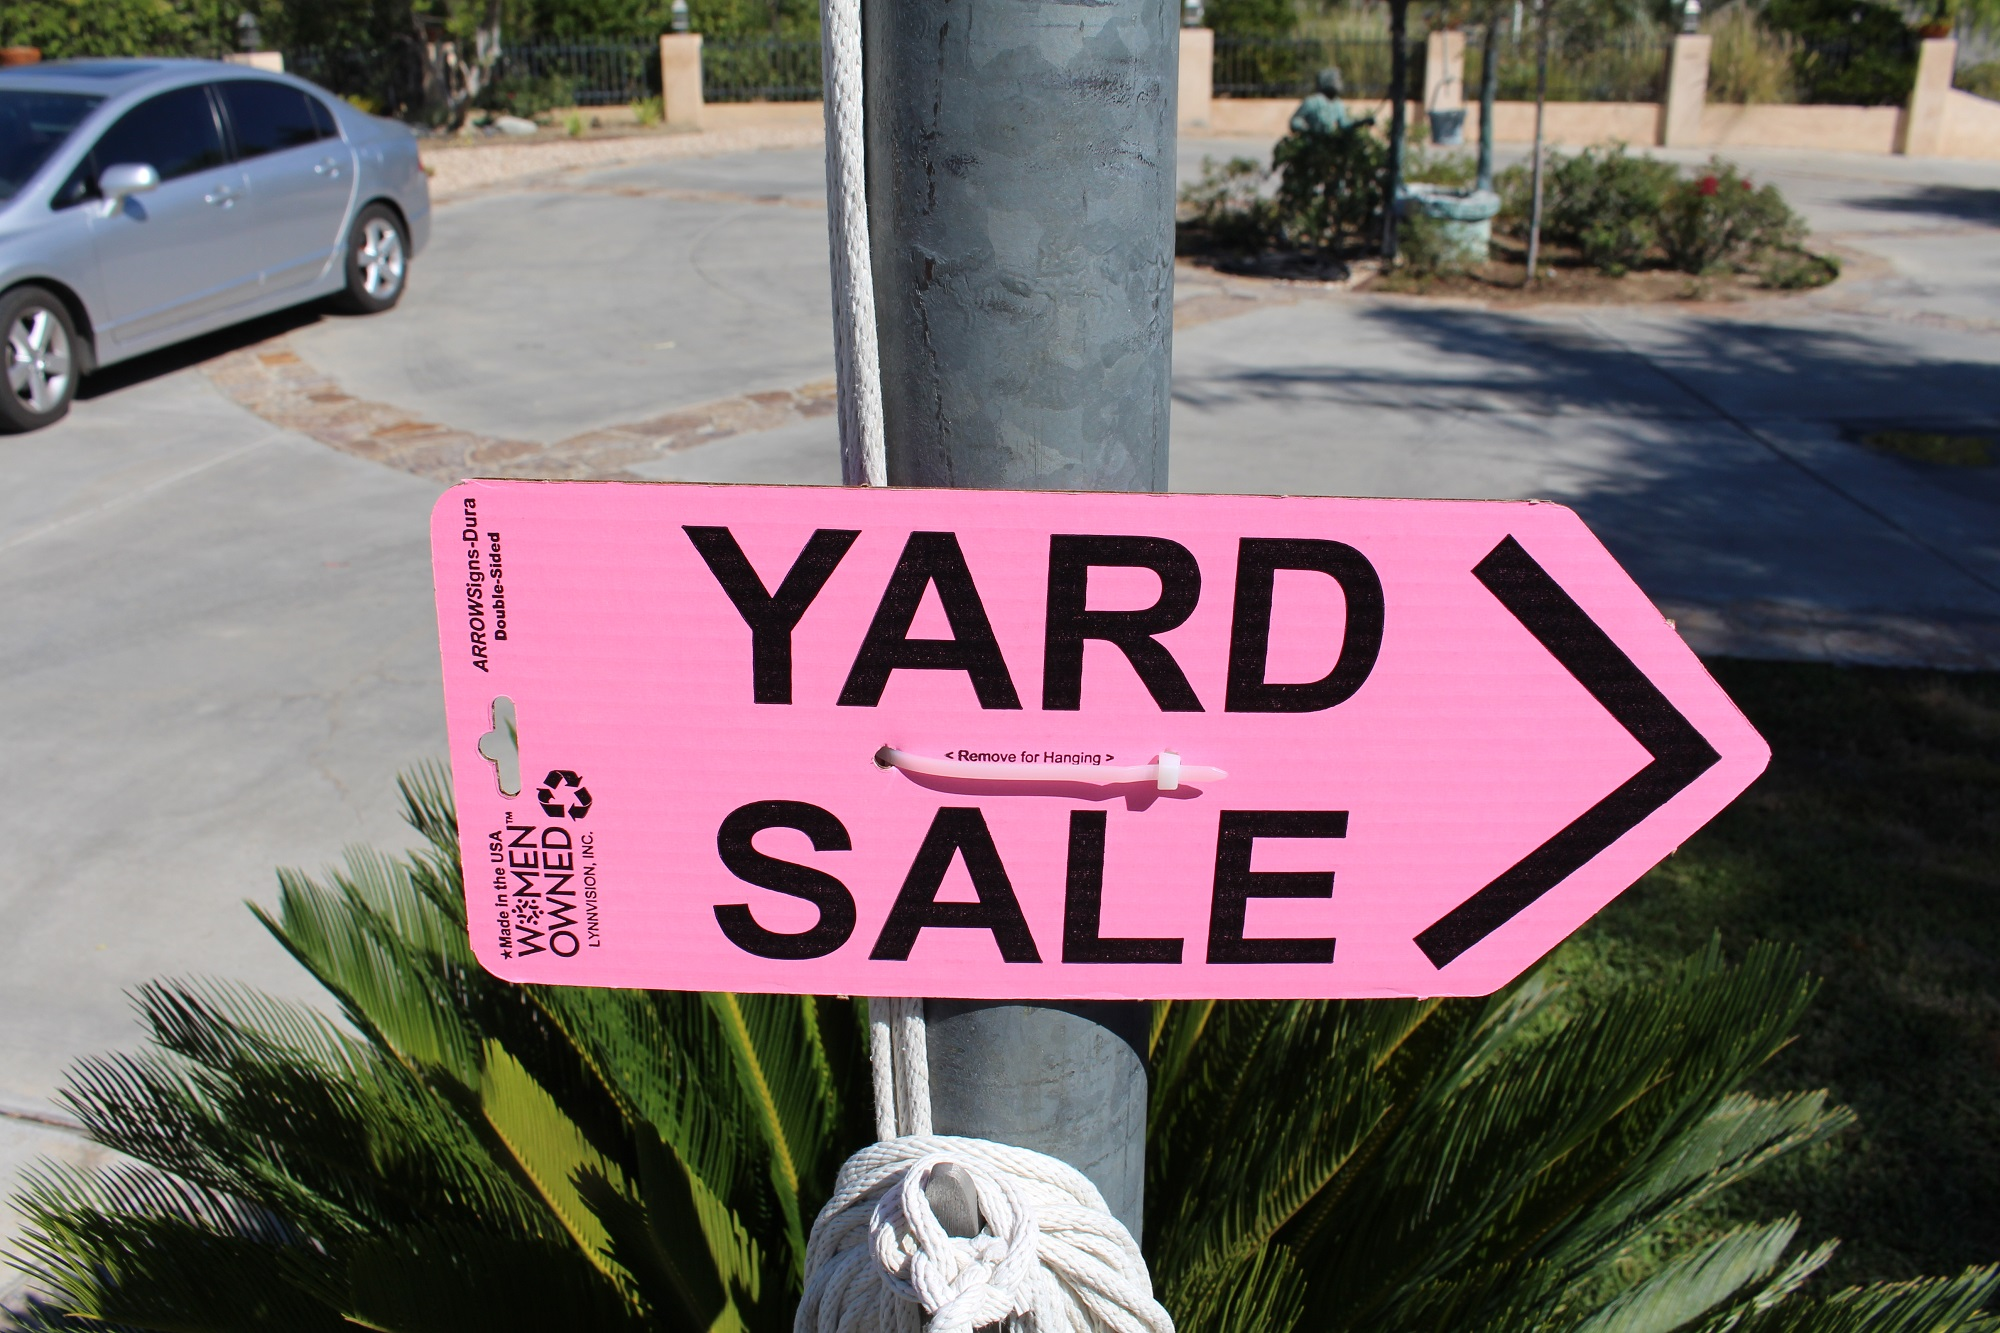 ARROWSigns-Dura-Pink-Yard-Sale-Sign-In-Use